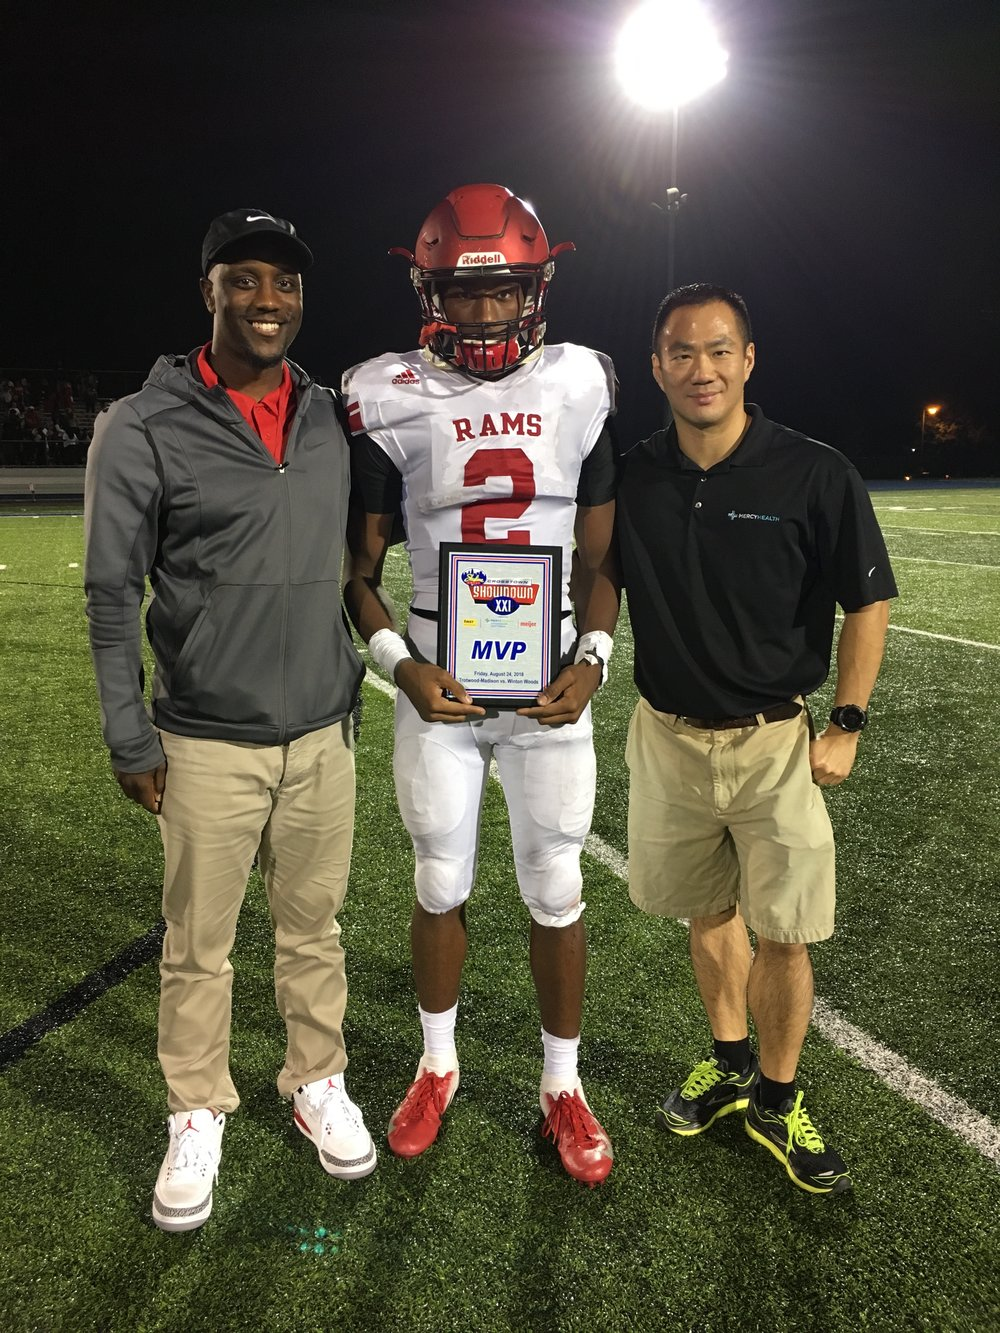 Trotwood-Madison MVP: Kenyon Sneed